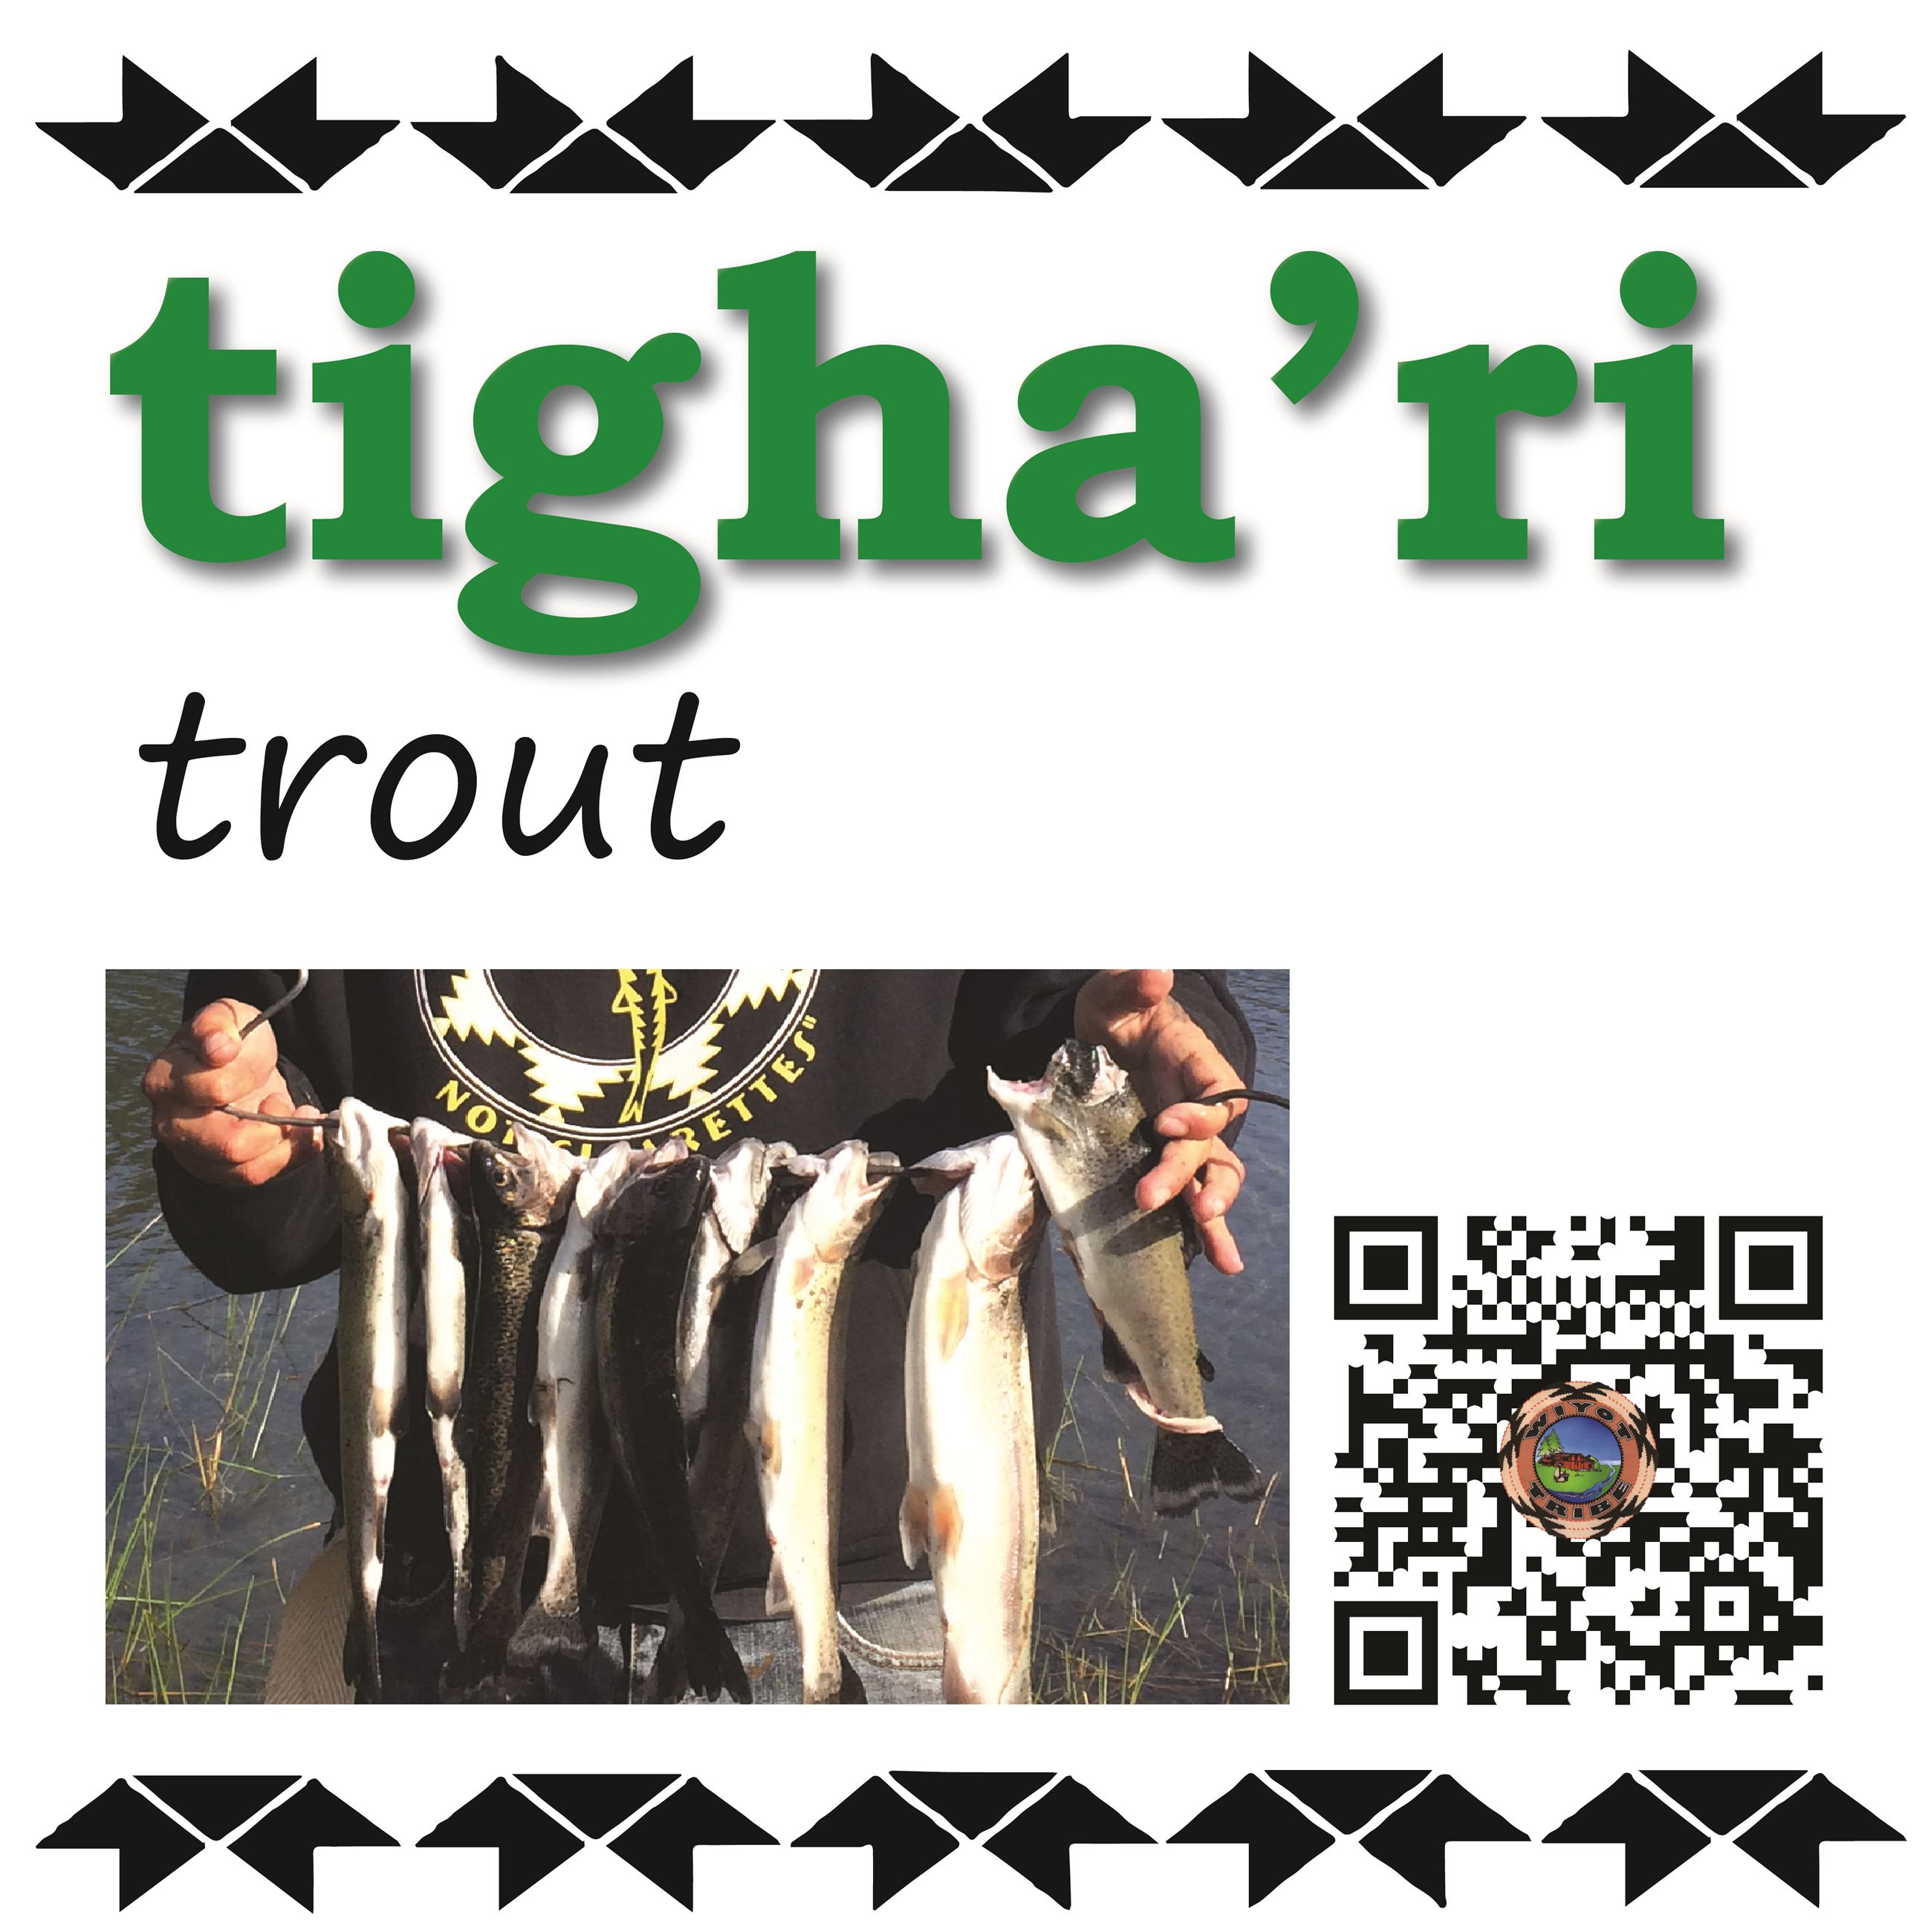 tigha'ri (trout)